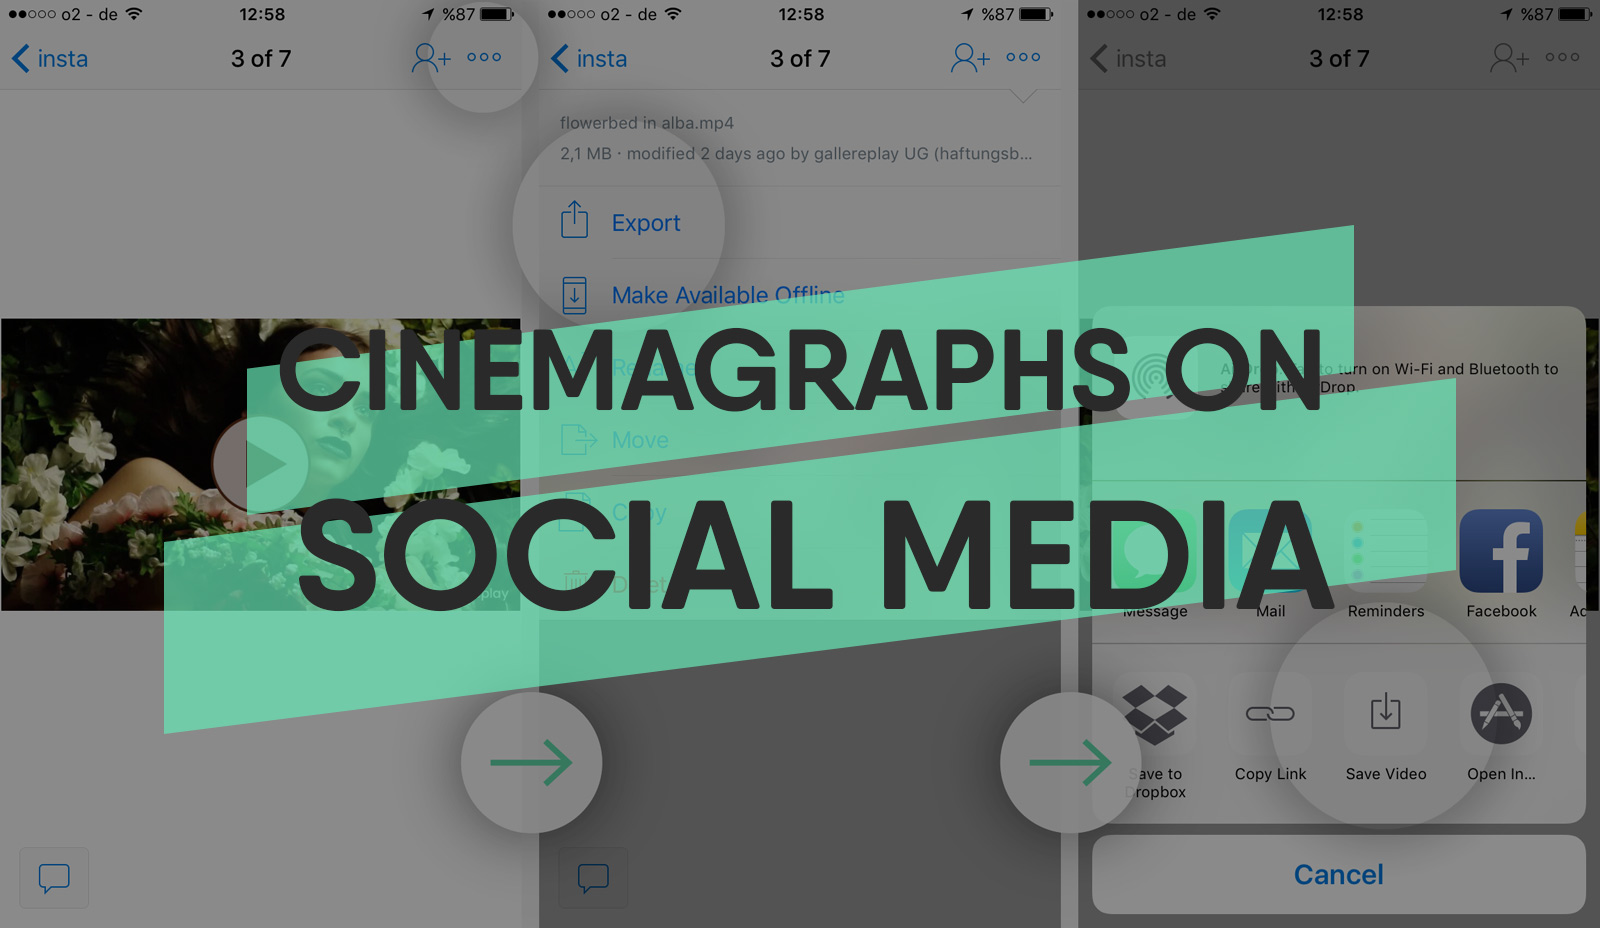 How to Post Cinemagraphs to Facebook, Instagram and Twitter